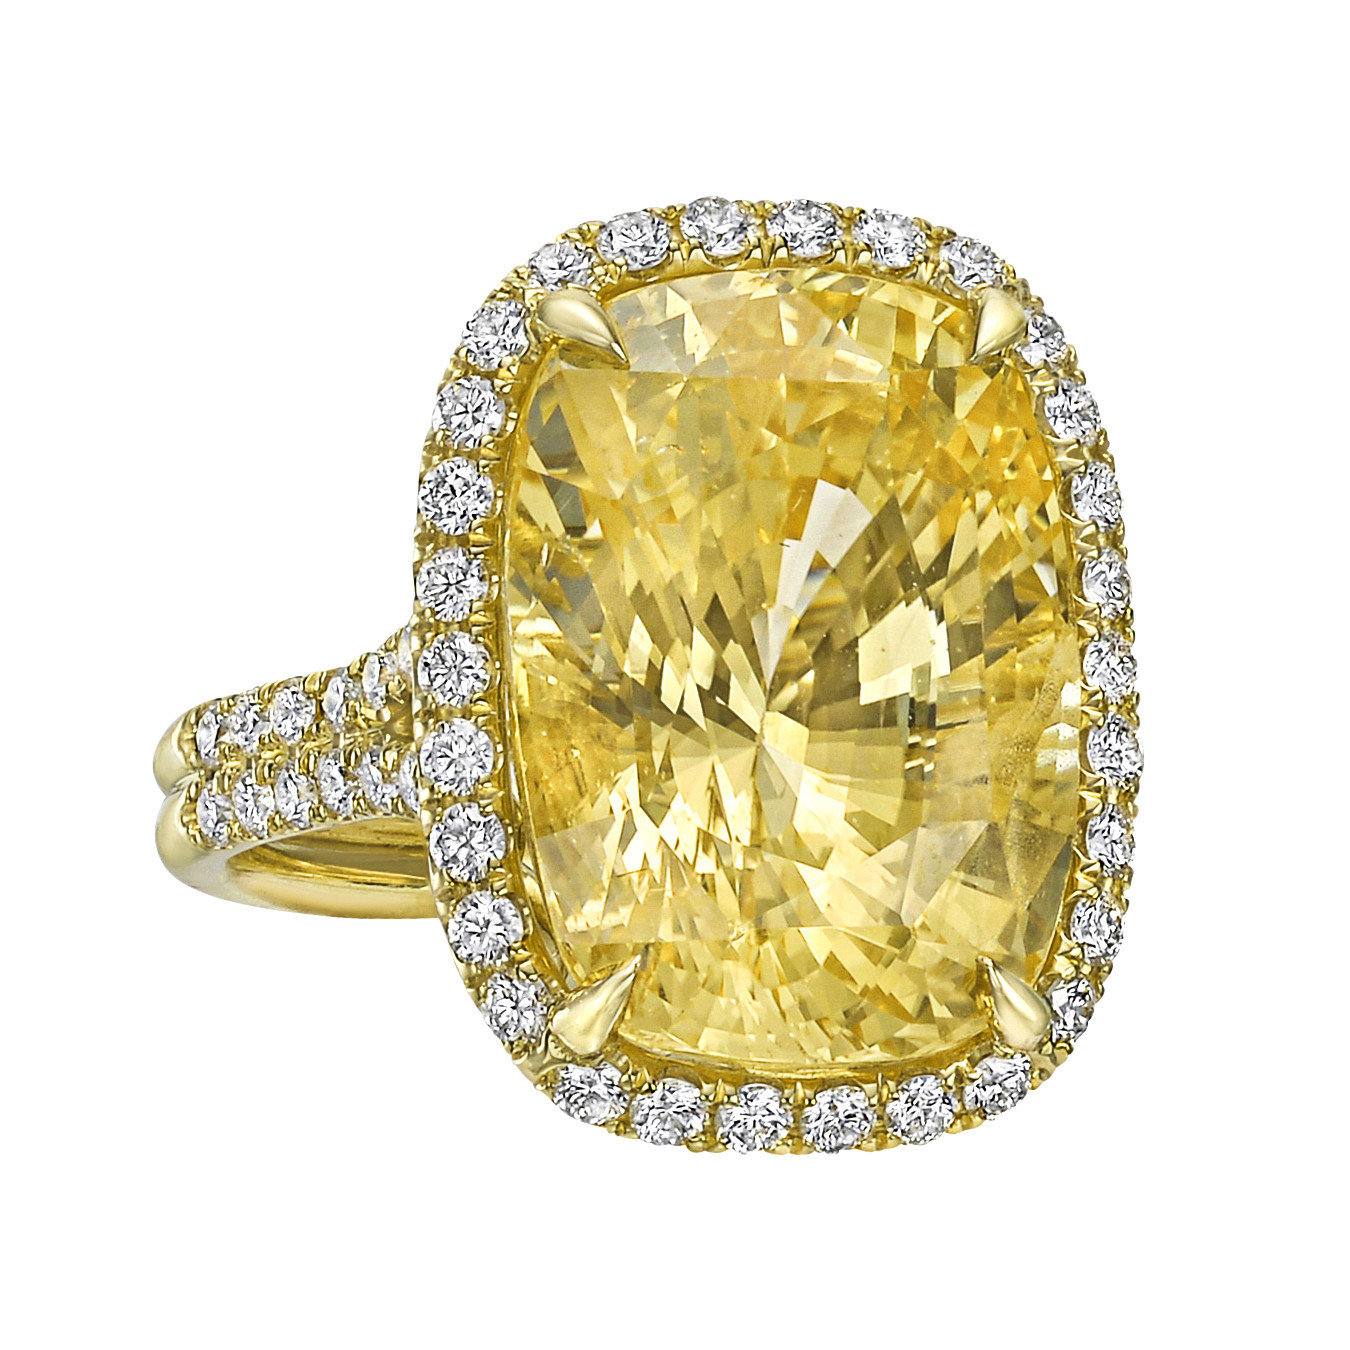 19.39ct No-Heat Yellow Sapphire Ring